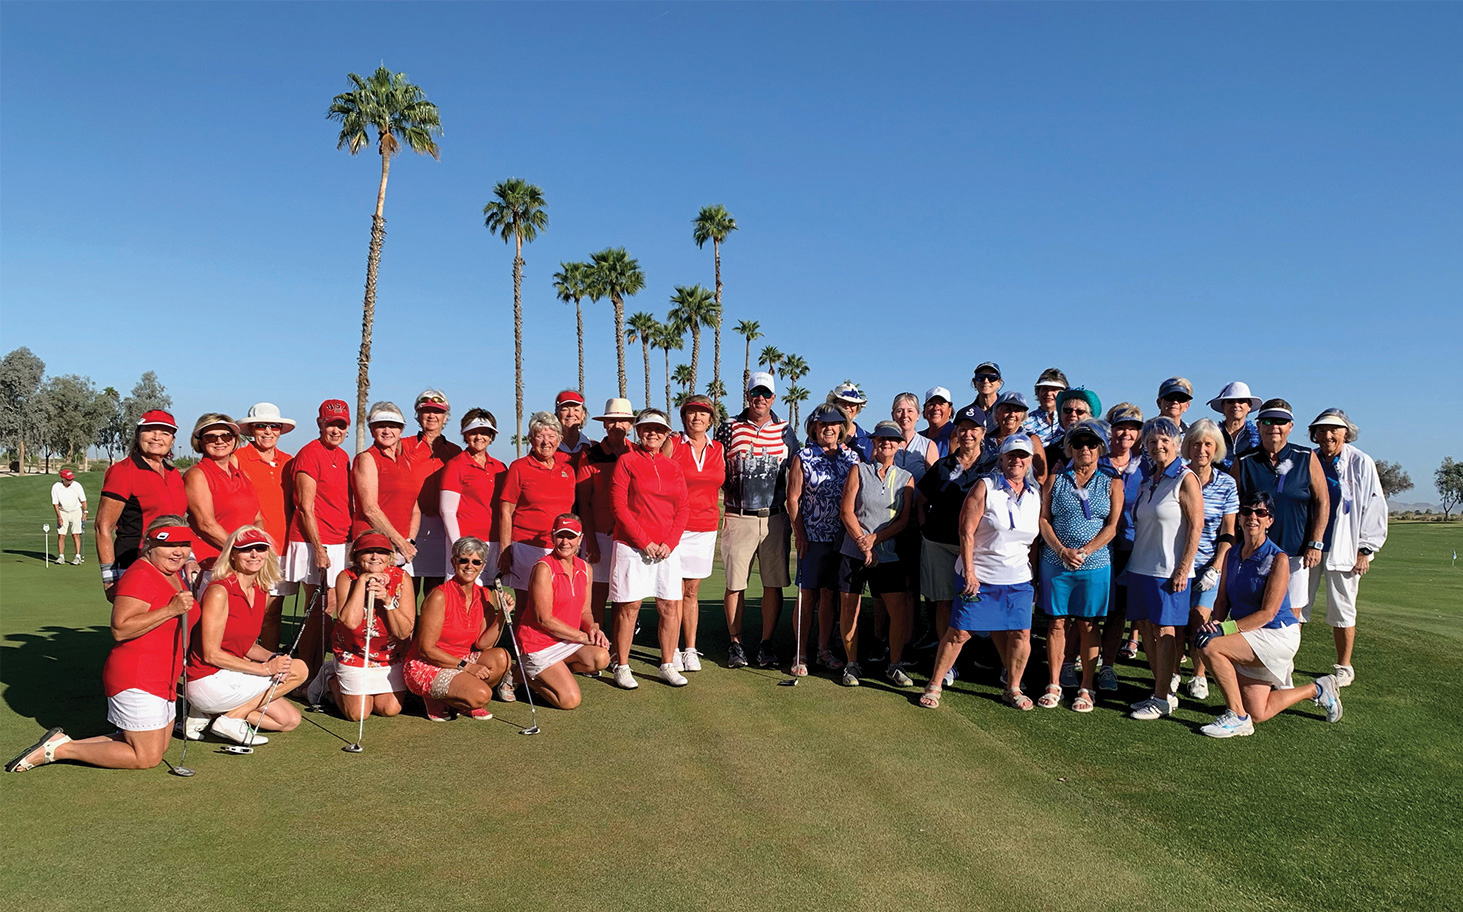 The Red and Blue Teams dressed to win! Golf pro Jay Wilson keeps the two rival teams separated.